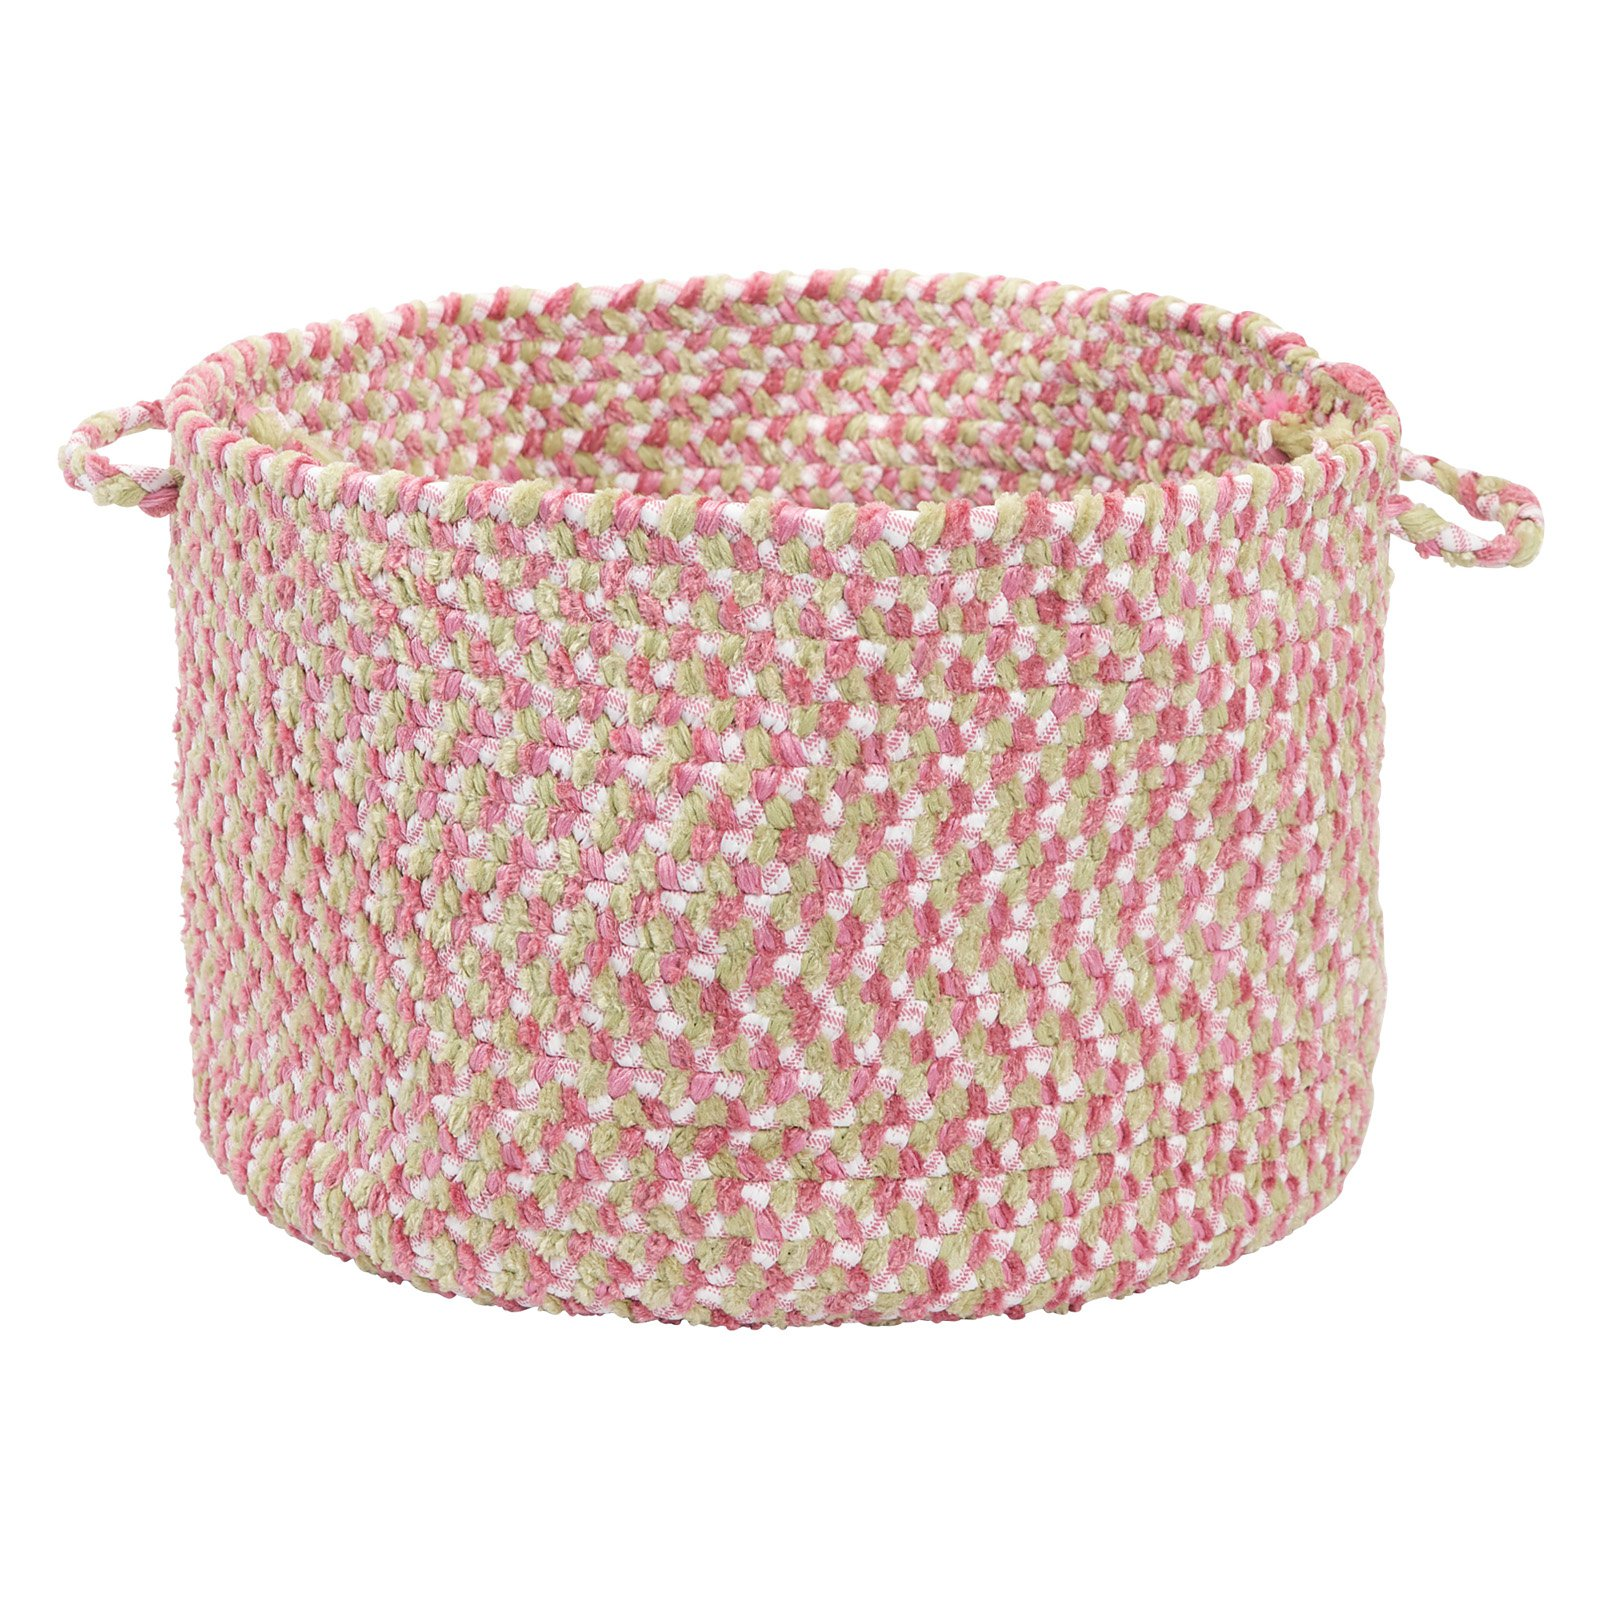 Confetti Storage Basket - available in 2 sizes